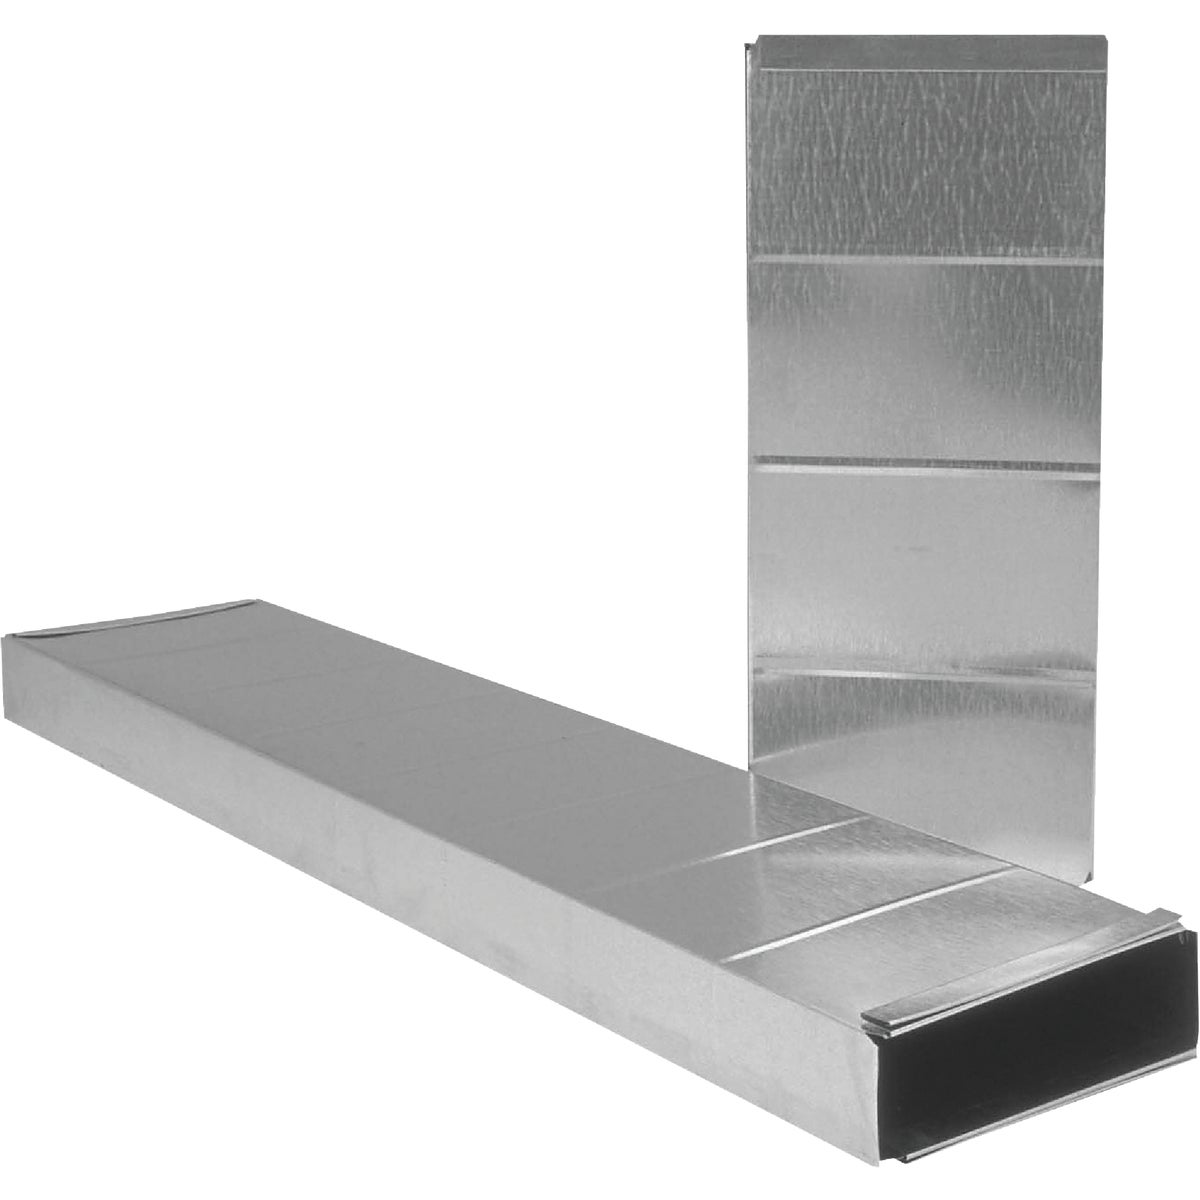 Imperial Mfg Group 2-1/4X12X24 DUCT GV1318